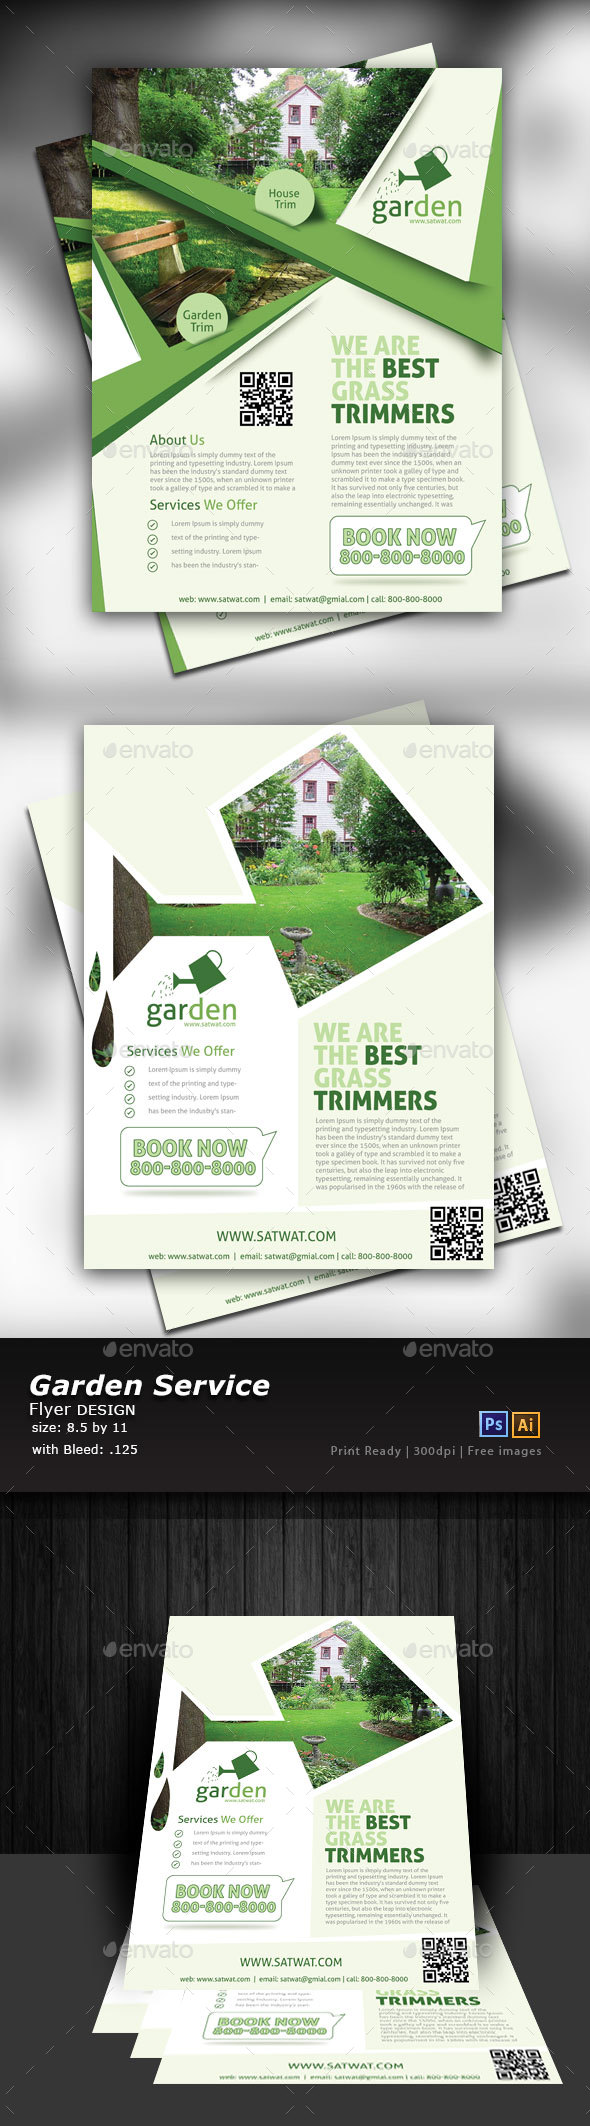 Lawn Care Flyers - Commerce Flyers